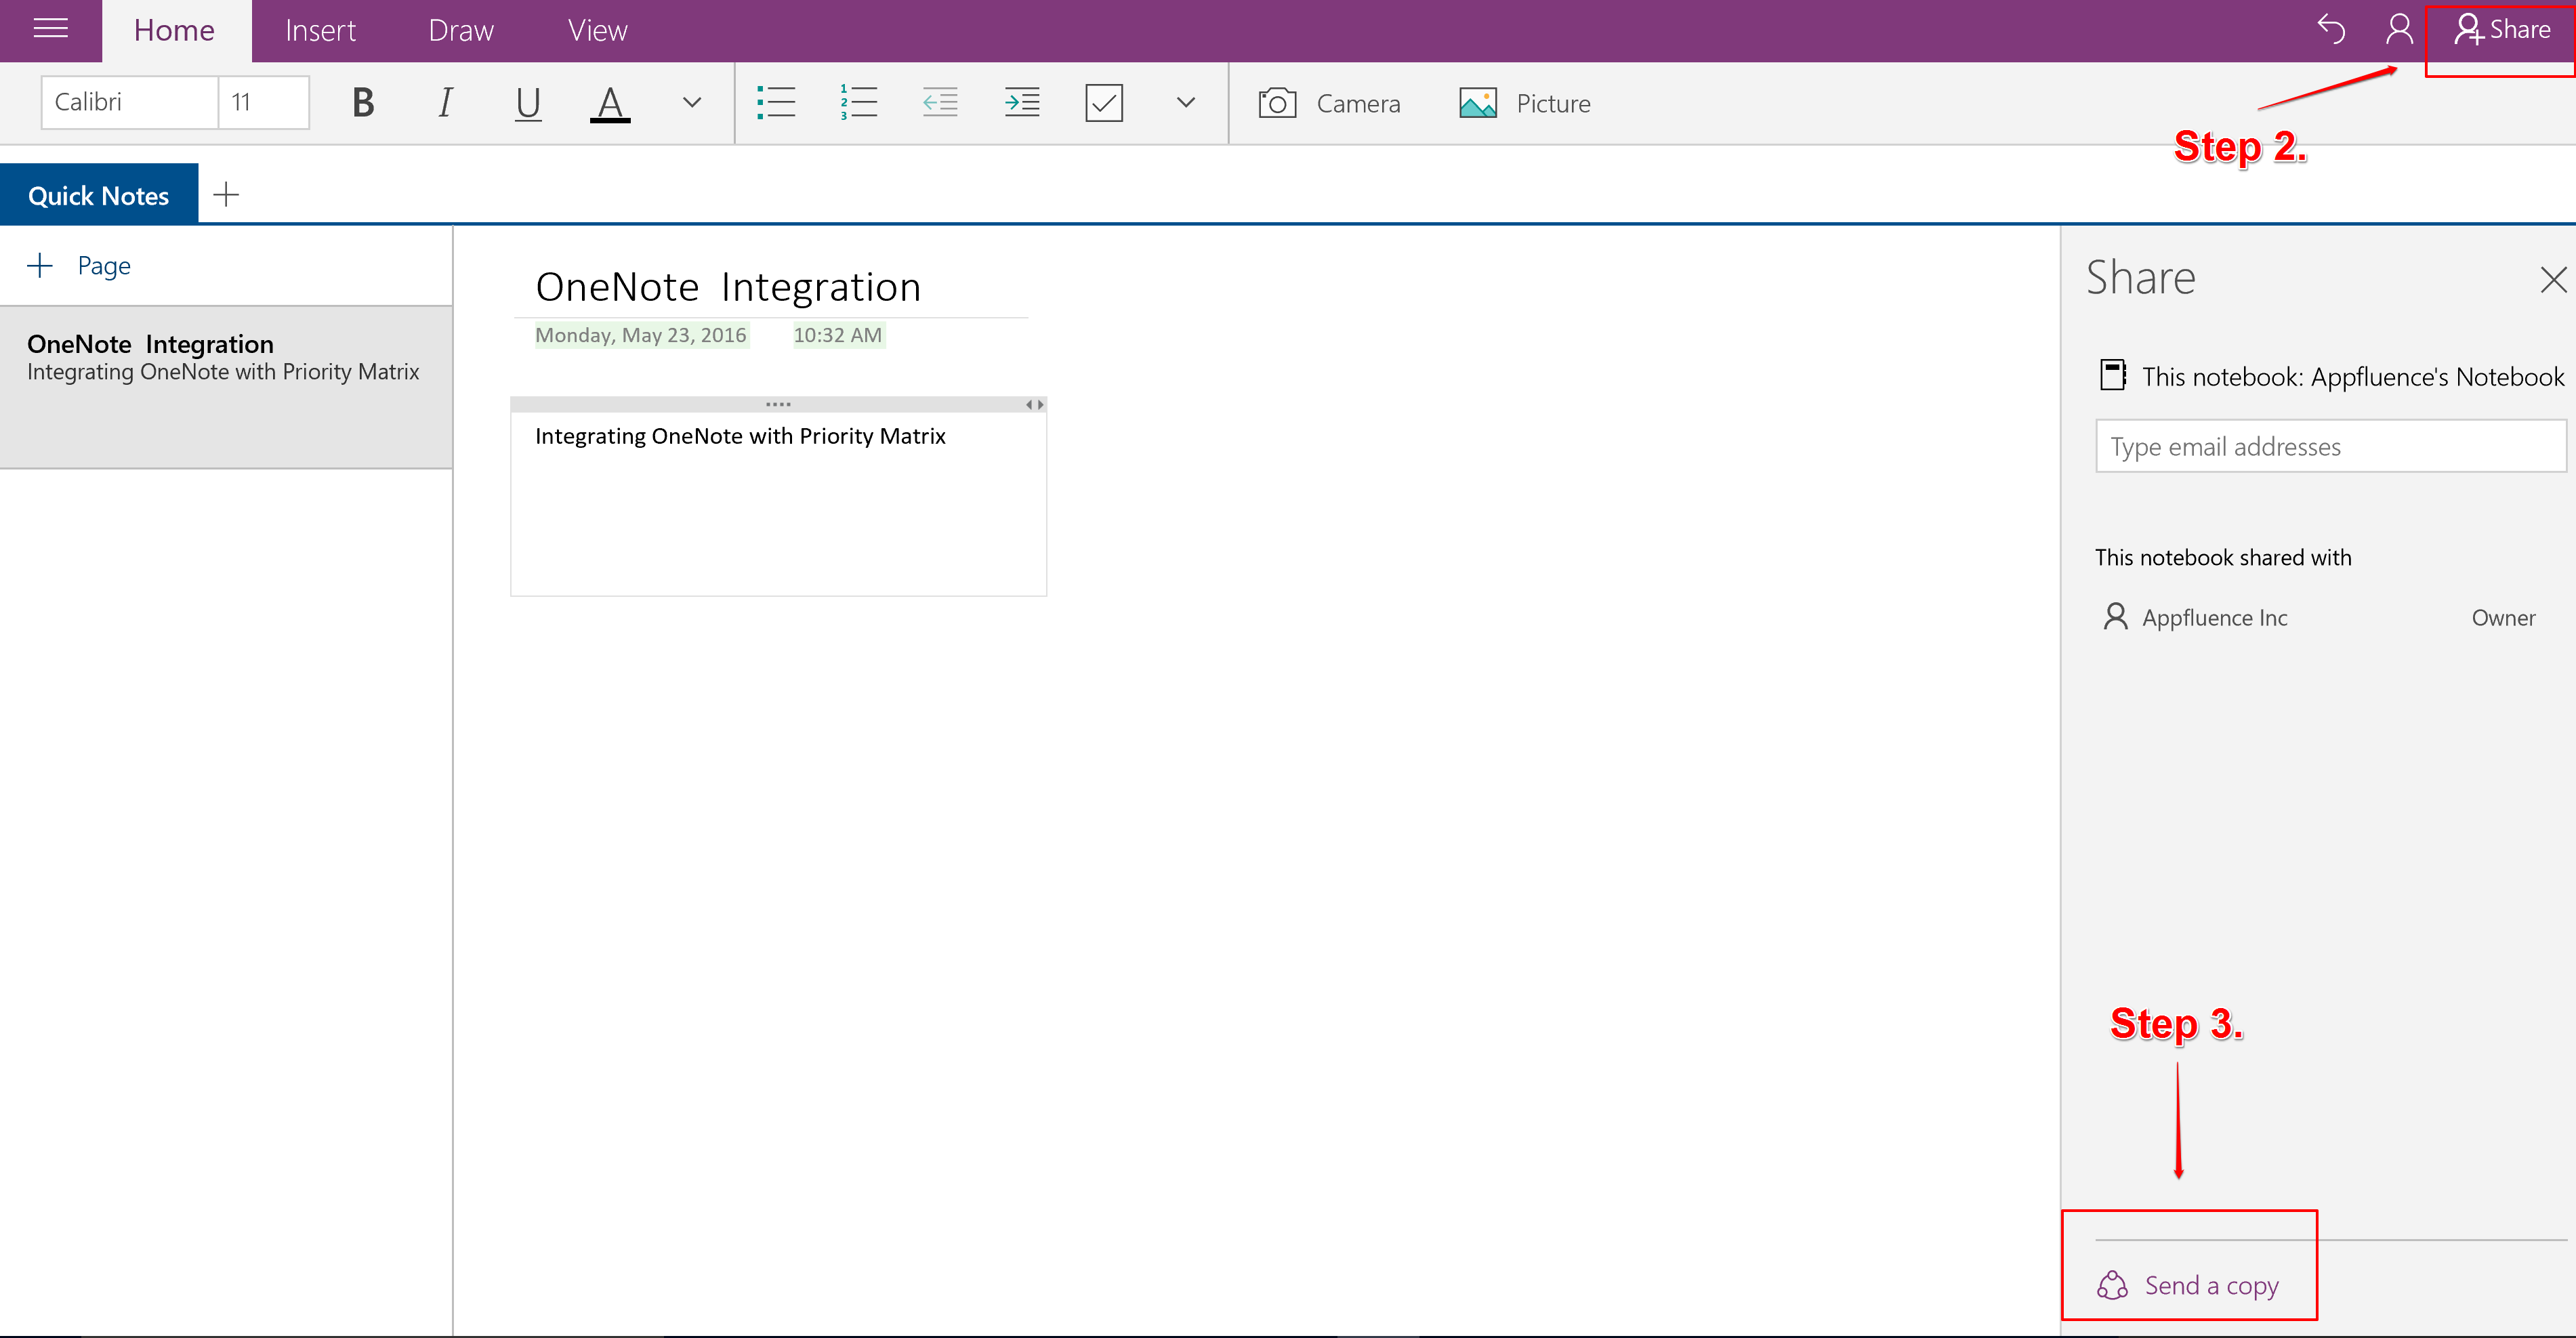 How to Integrate OneNote with Priority Matrix on Windows